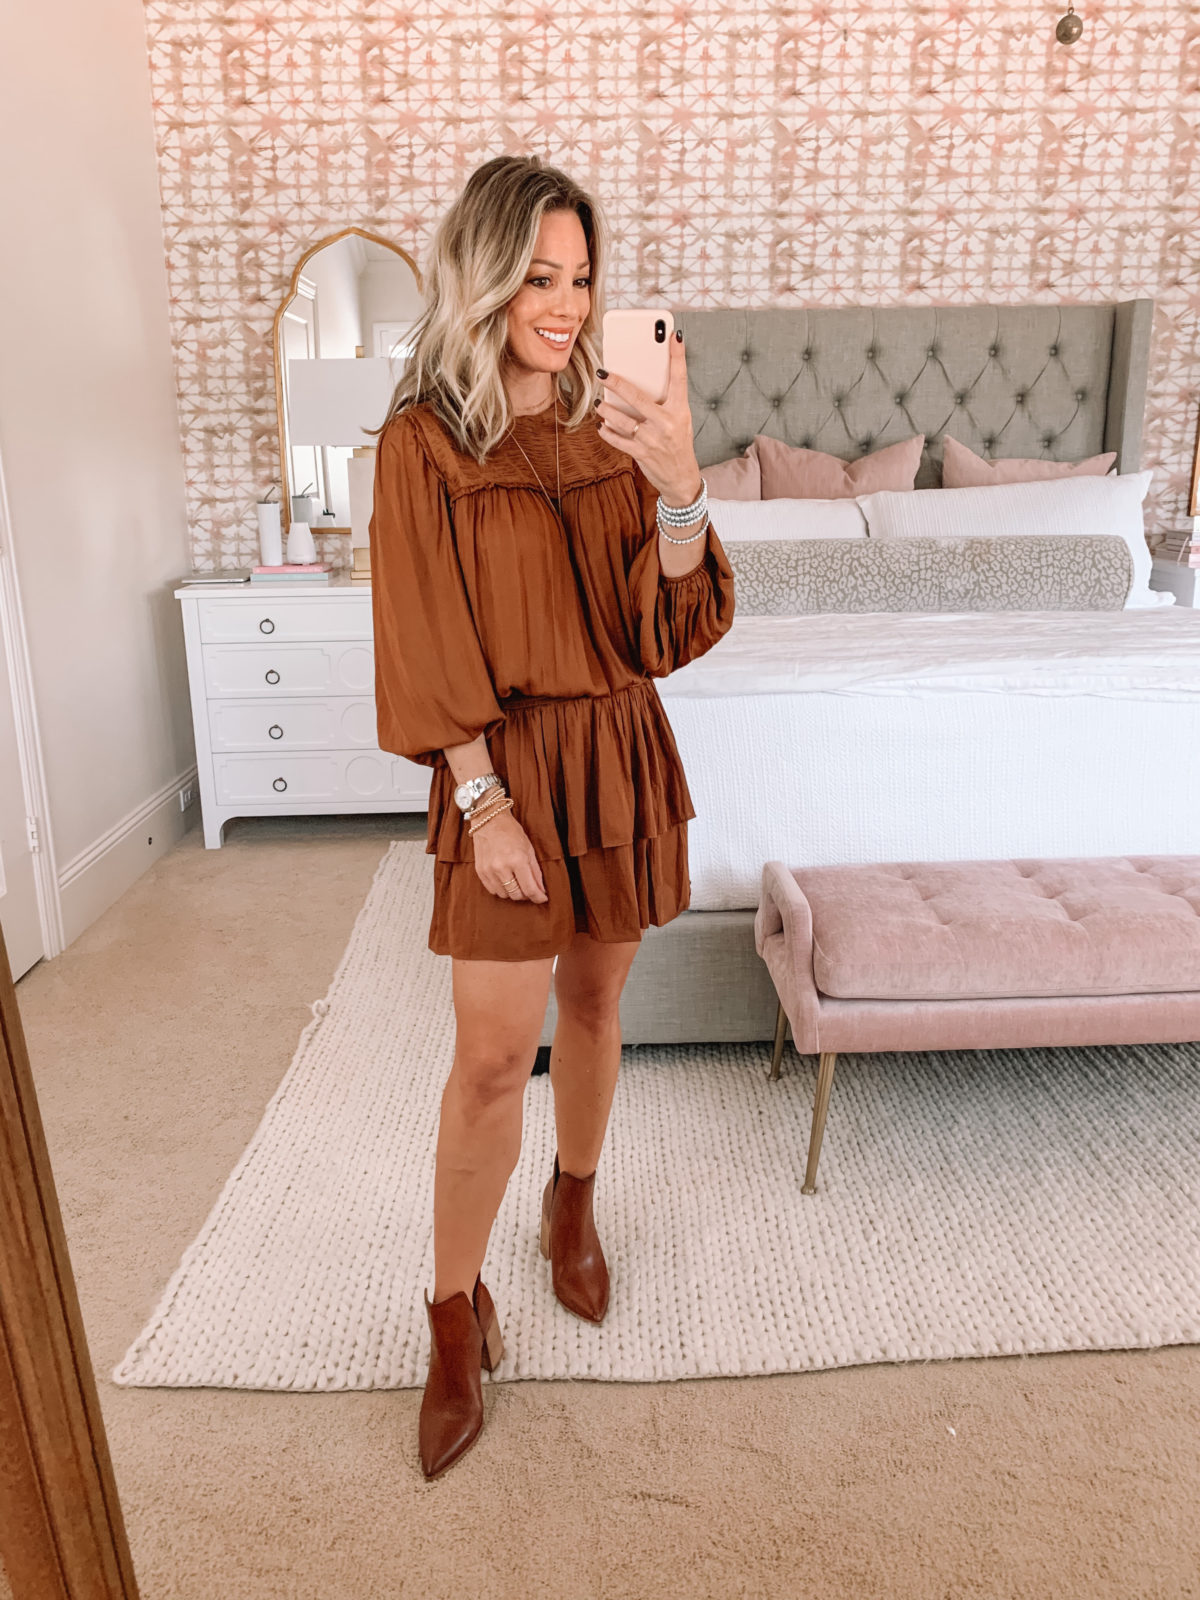 Red Dress Fashion Finds, Peasant Dress, Booties